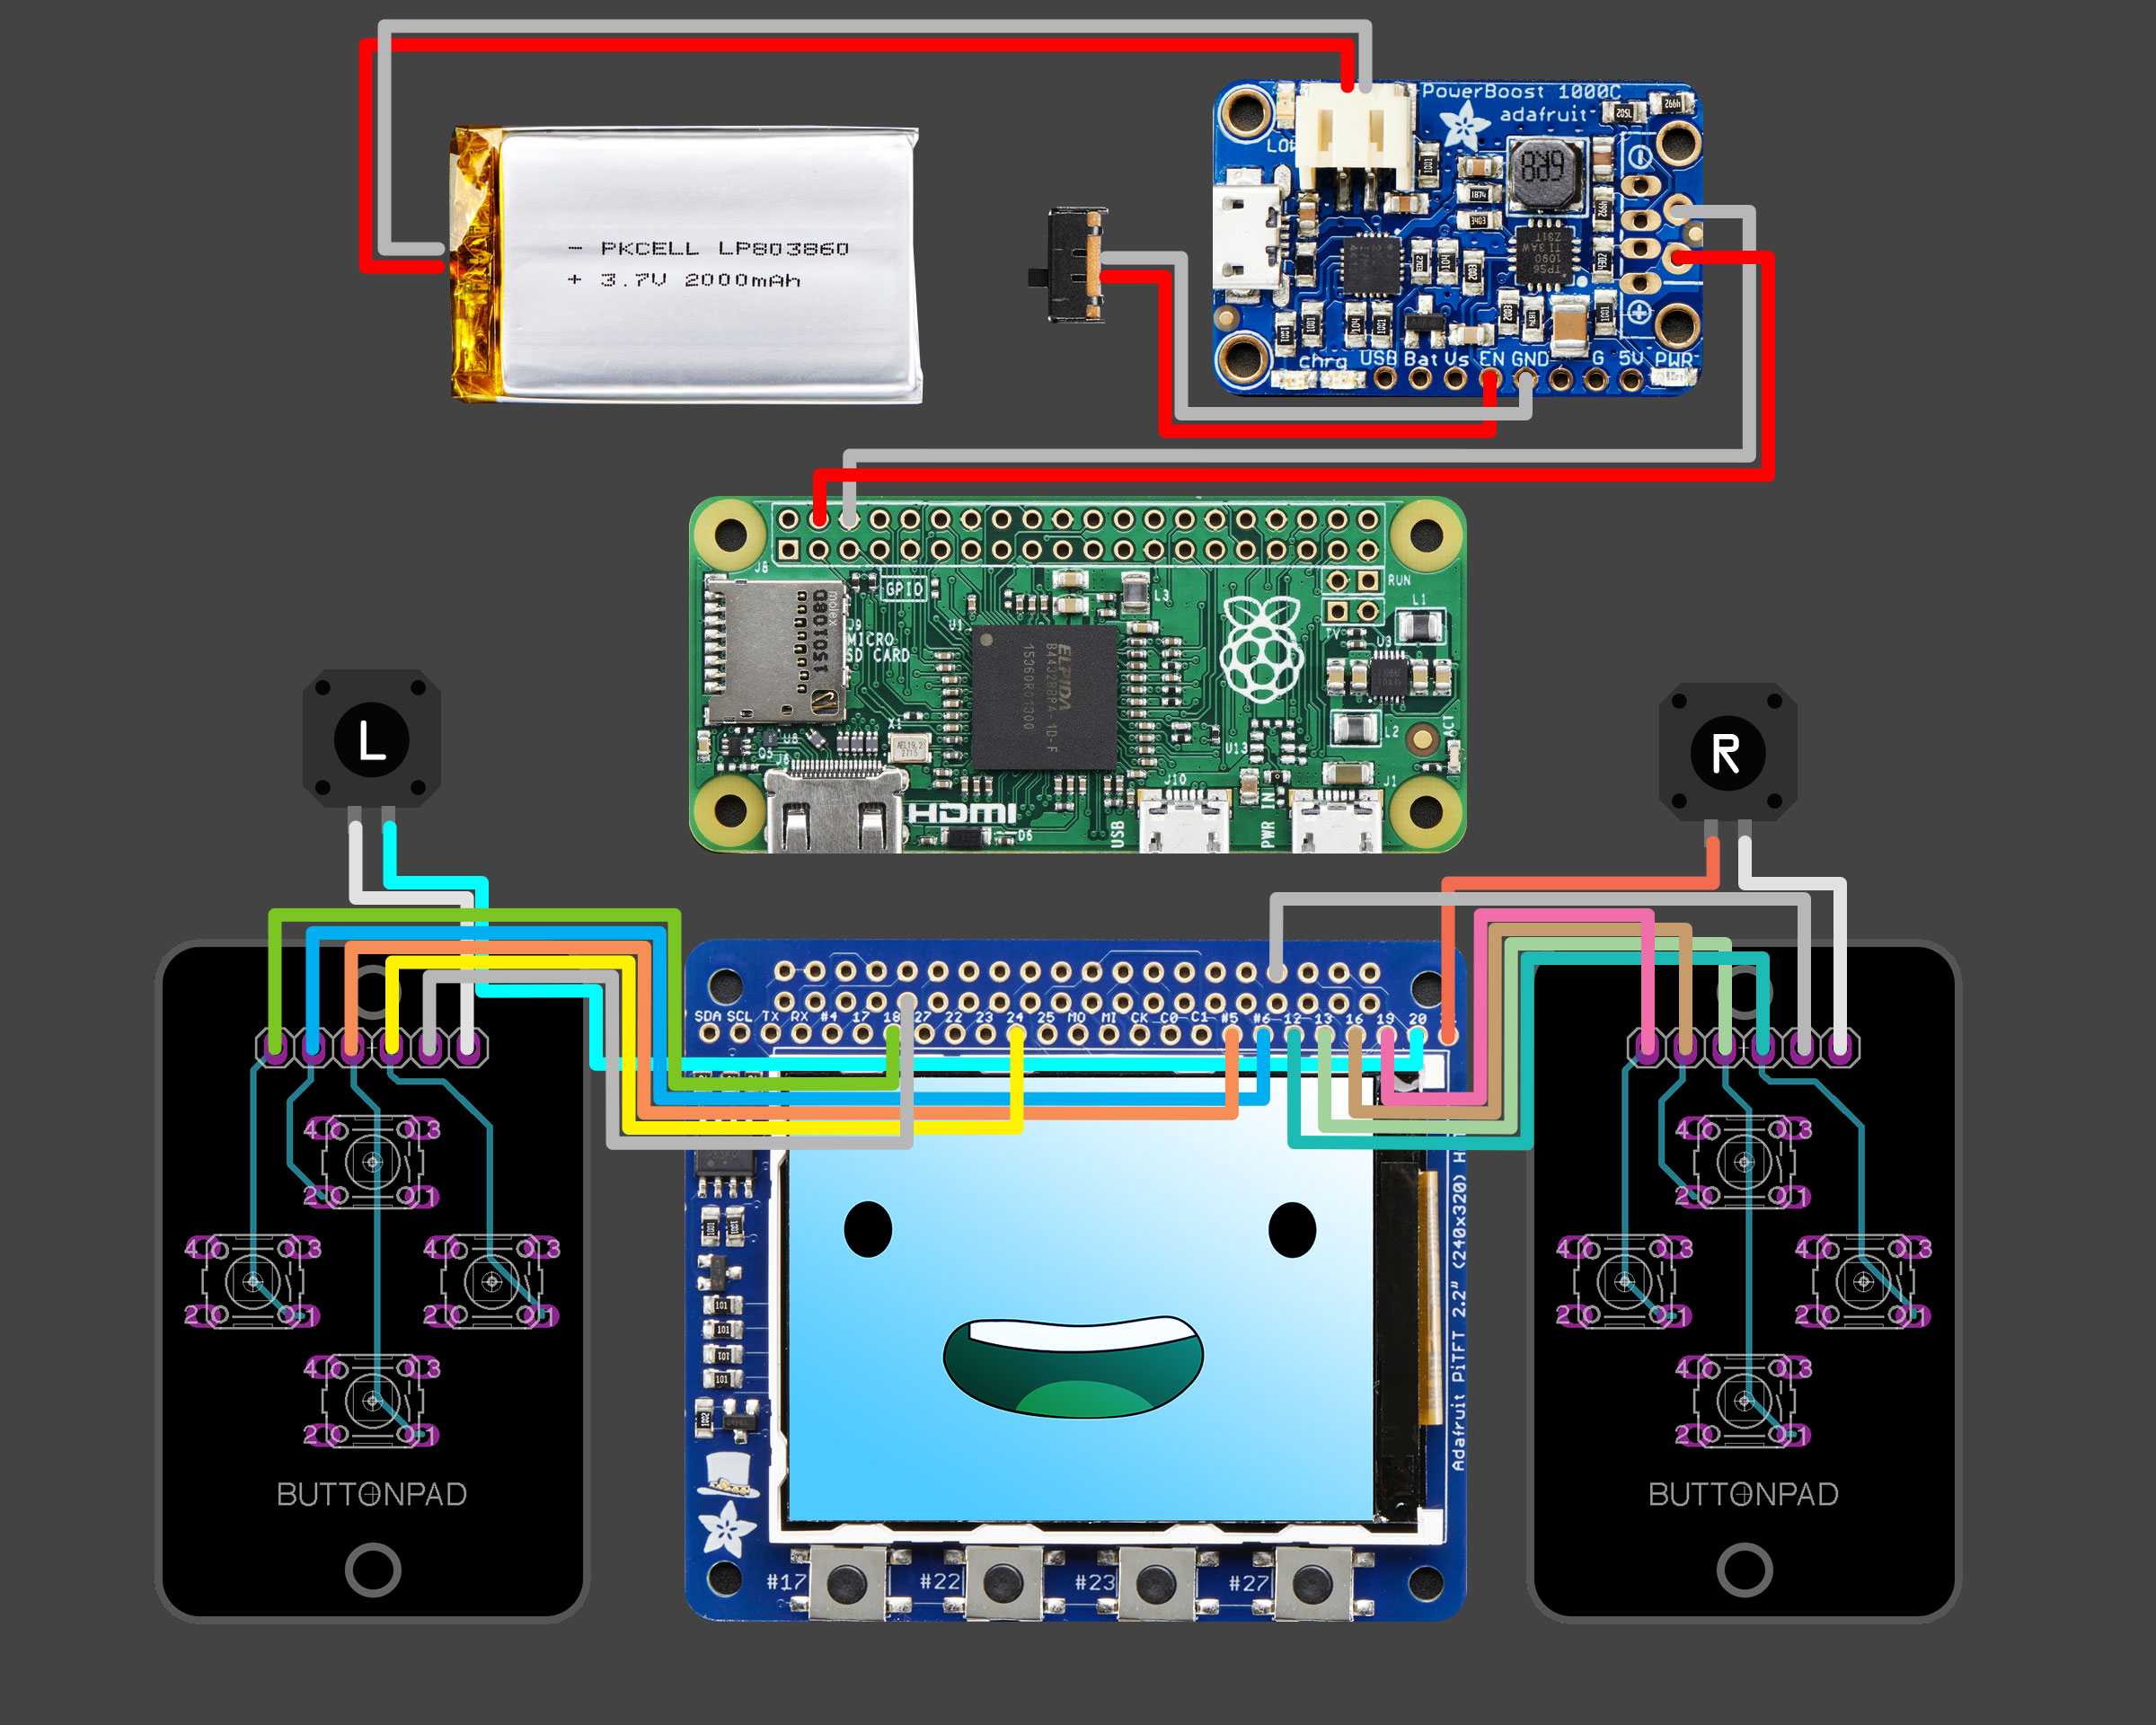 Adafruit customer service forums • View topic - Pigrrl Zero